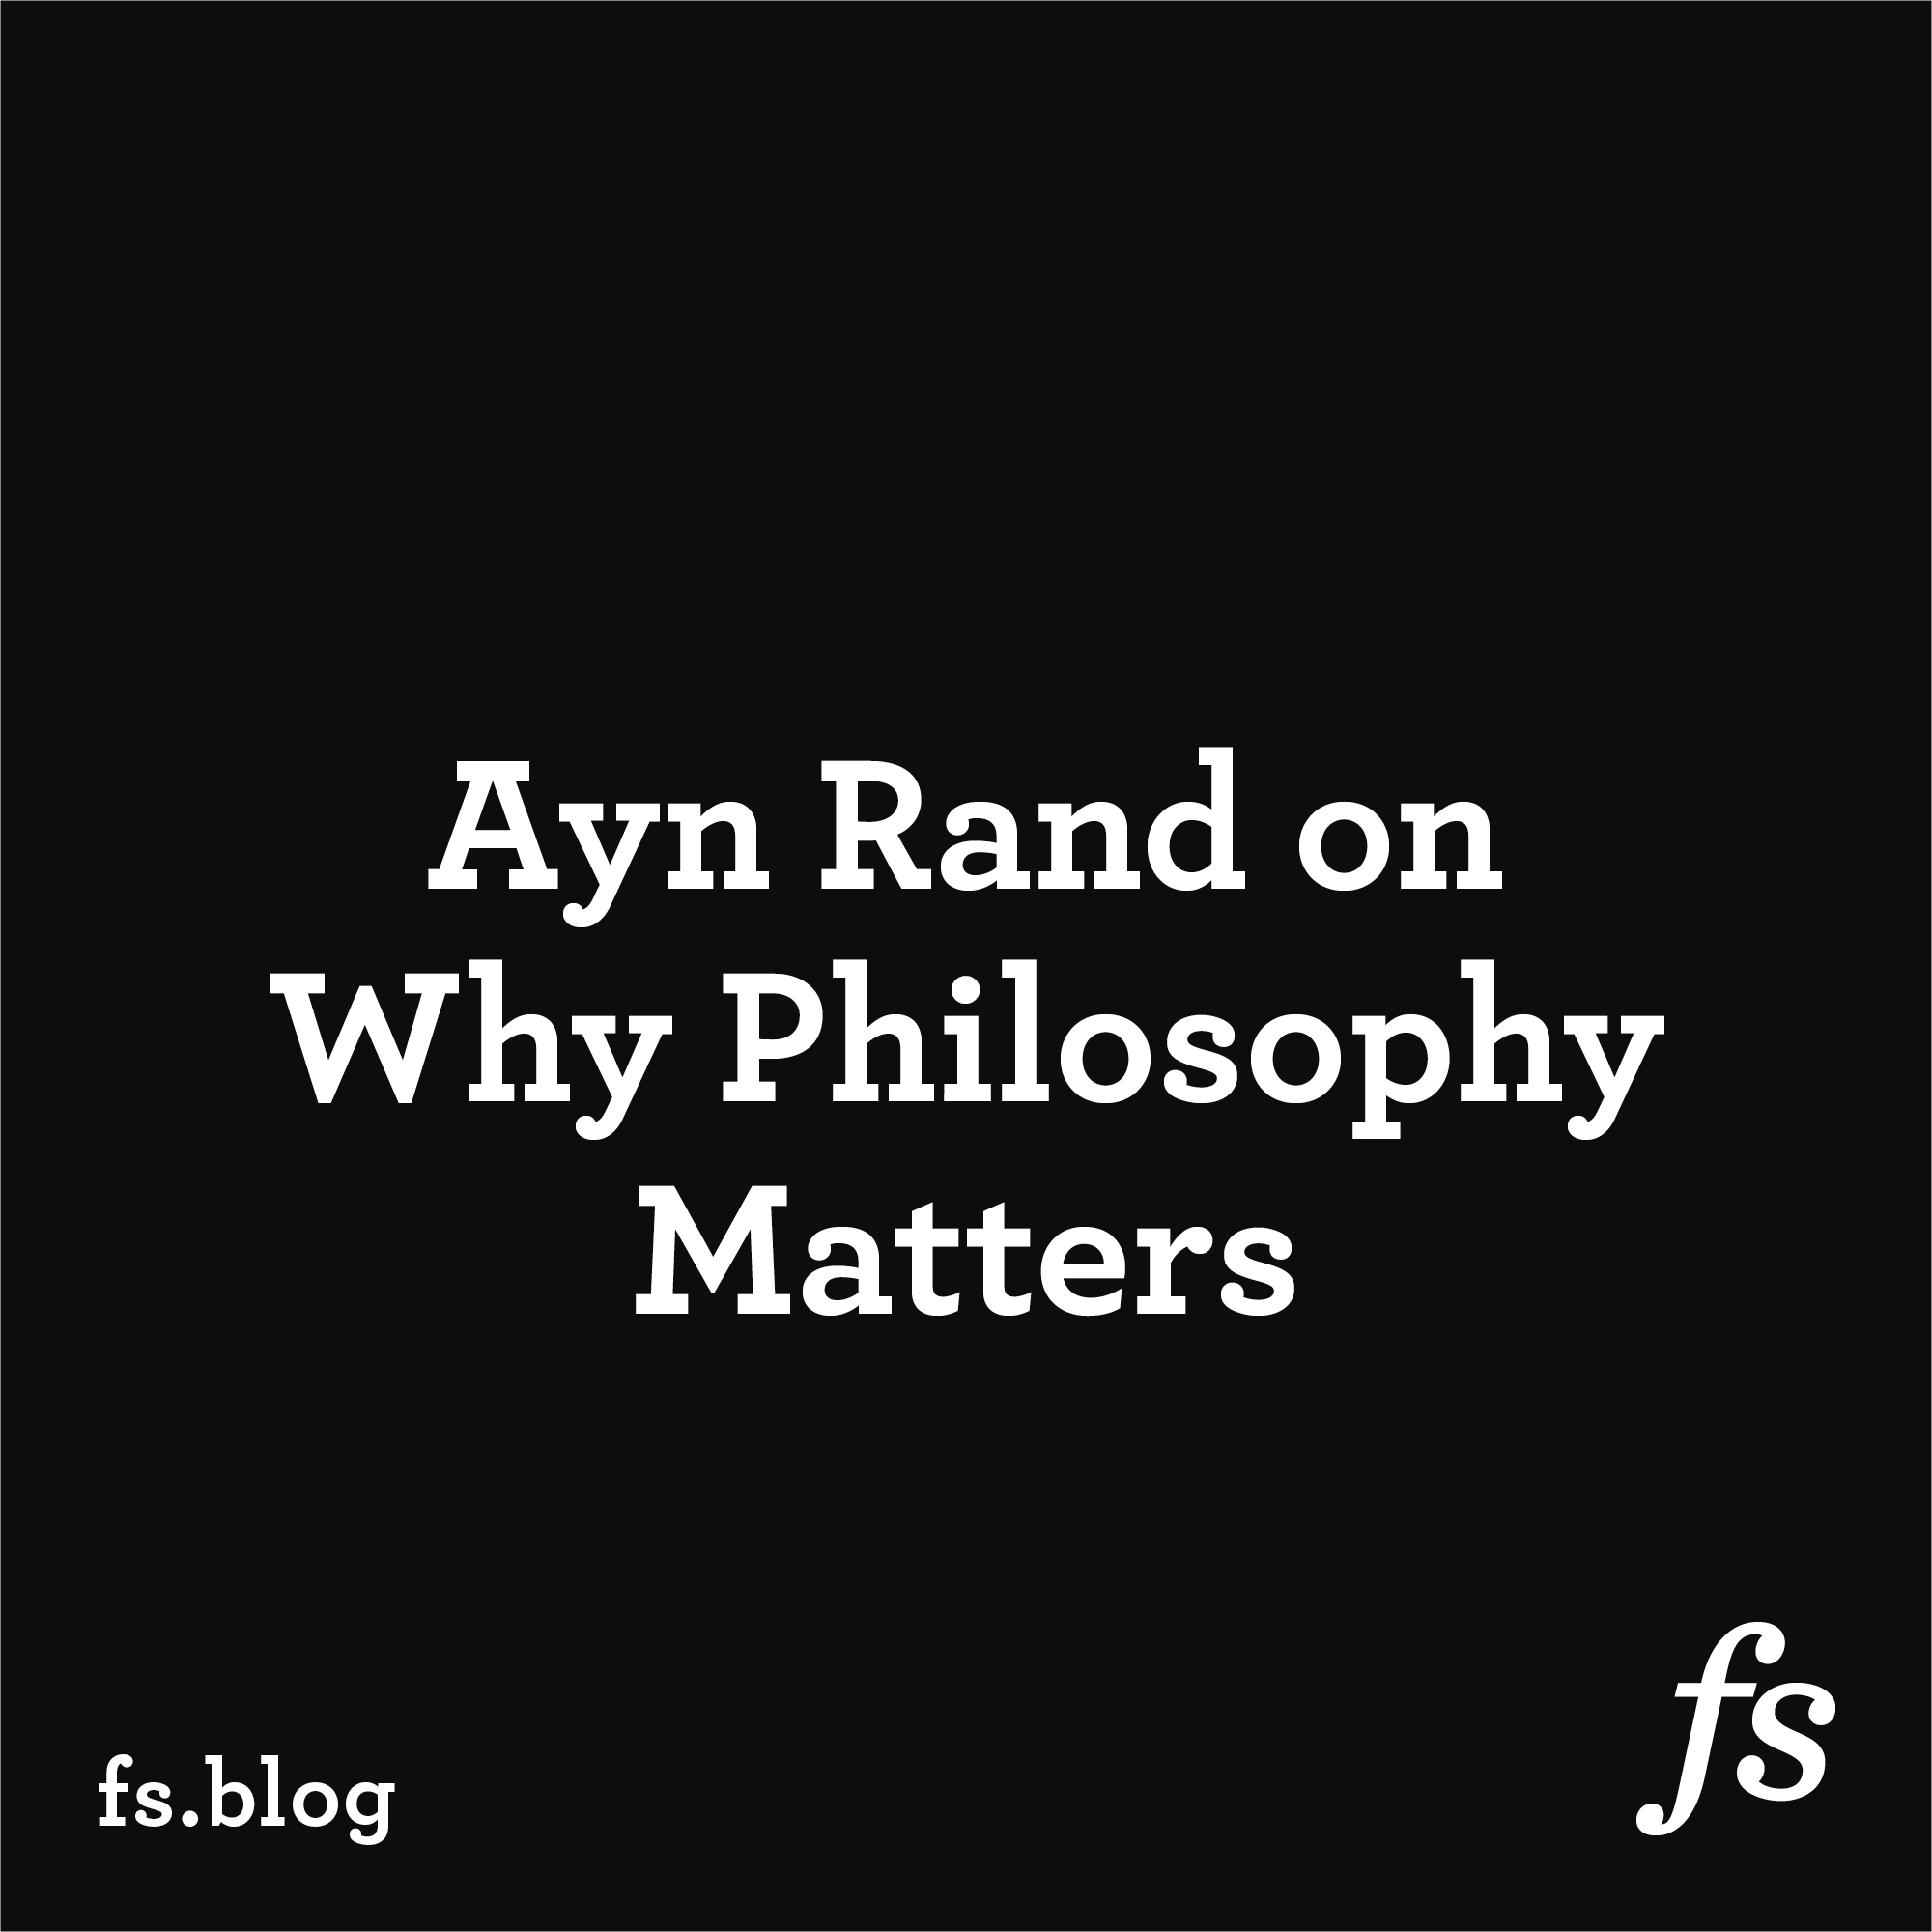 Ayn Rand on Why Philosophy Matters